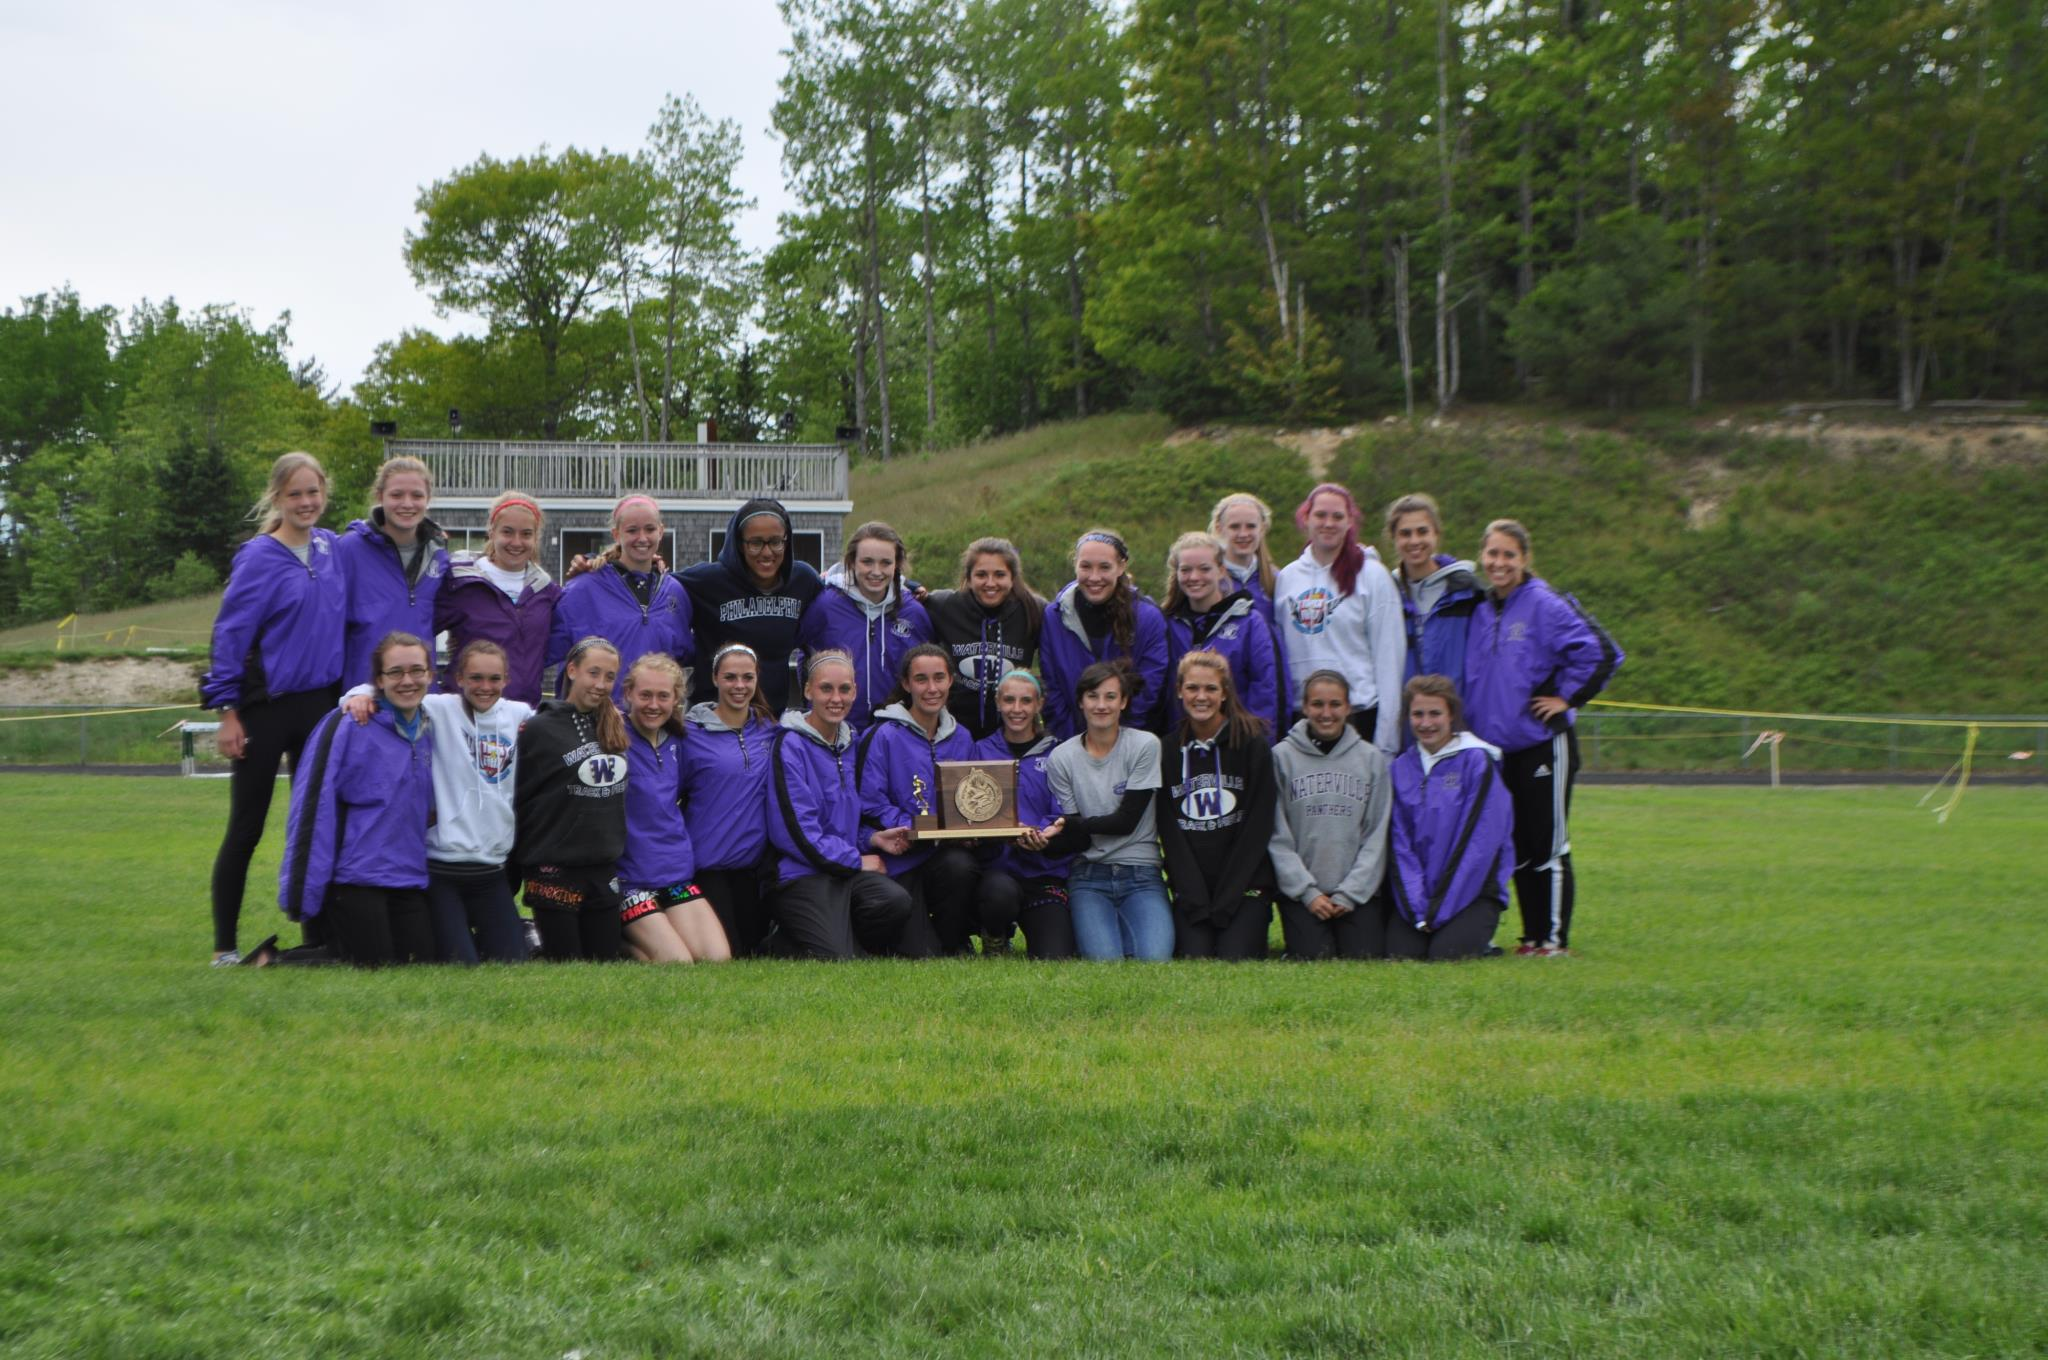 waterville single girls Licensed to lawrence high school -me hy-tek's meet manager 4/27/2016 08:24 pm waterville junior high school meet - 4/26/2016 4/26/2016 results girls 100 meter dash ===== name year school seed finals h# ===== finals 1 veilleux, jenna winslow 1515 5 2 garling, sadie waterville 1532 5 3 fogg, emma waterville 1544 5 4.